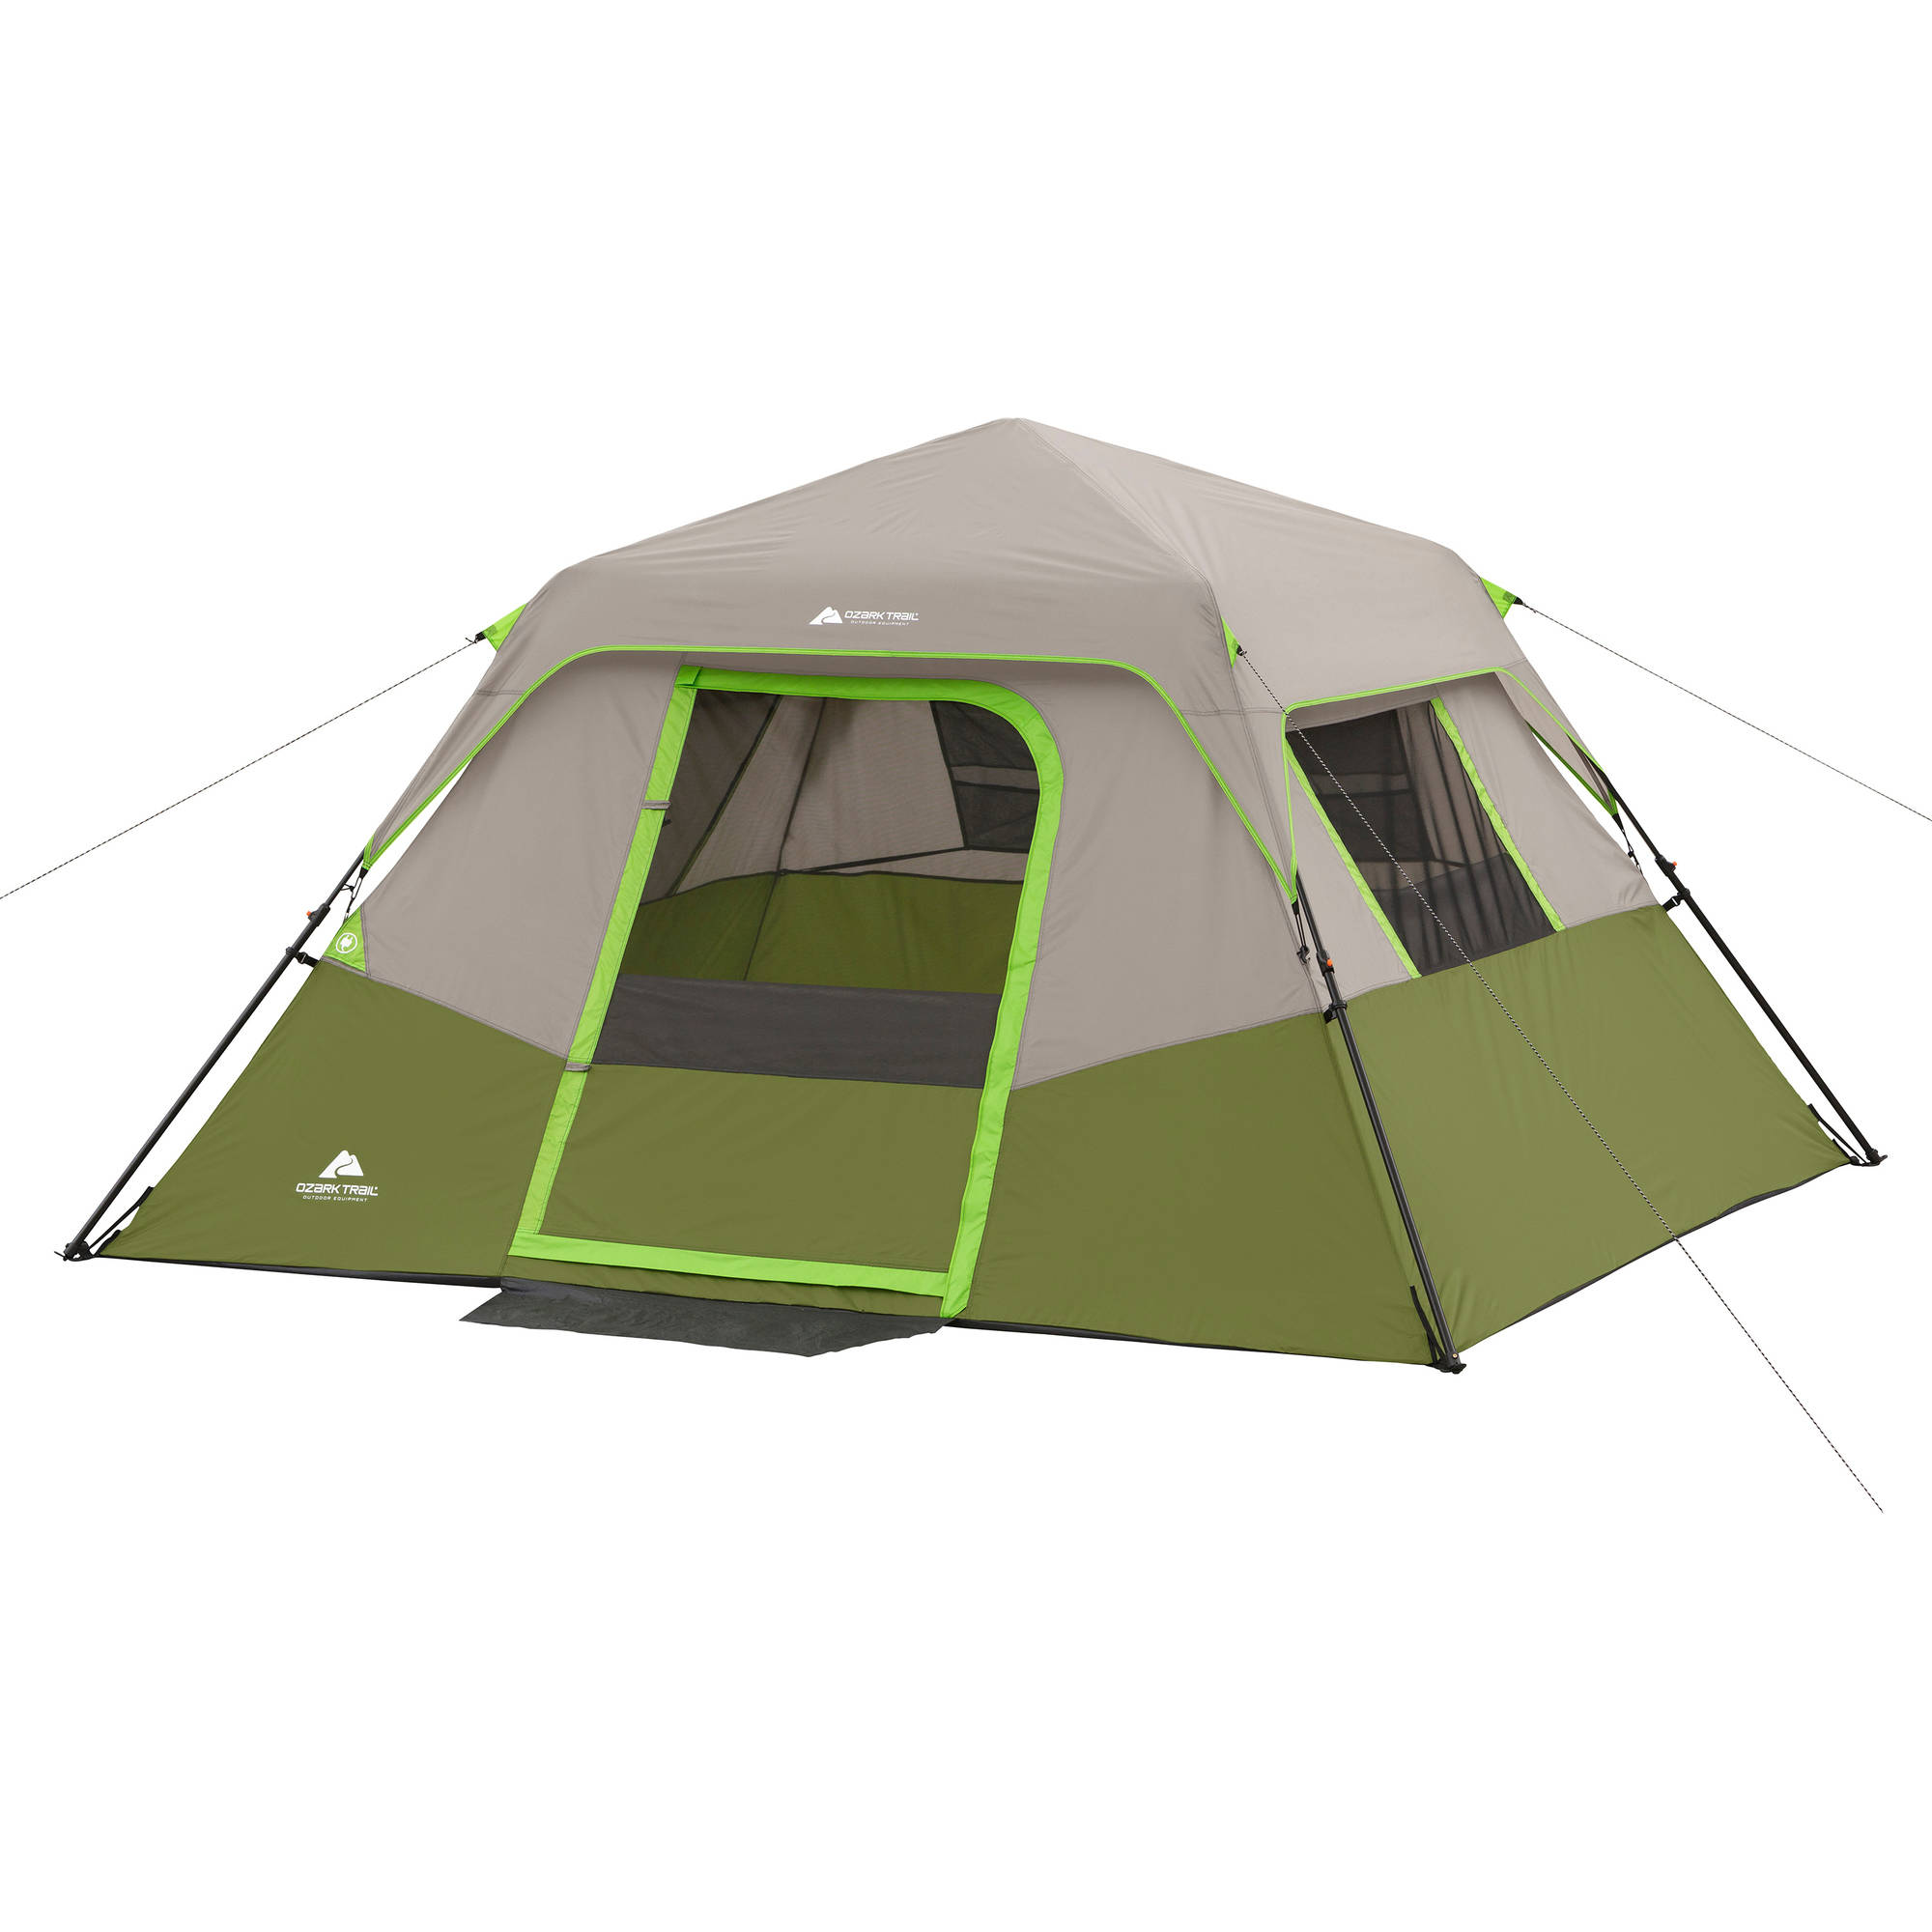 connec cabin tent cabins canopy all itm season person hiking outdoor camping